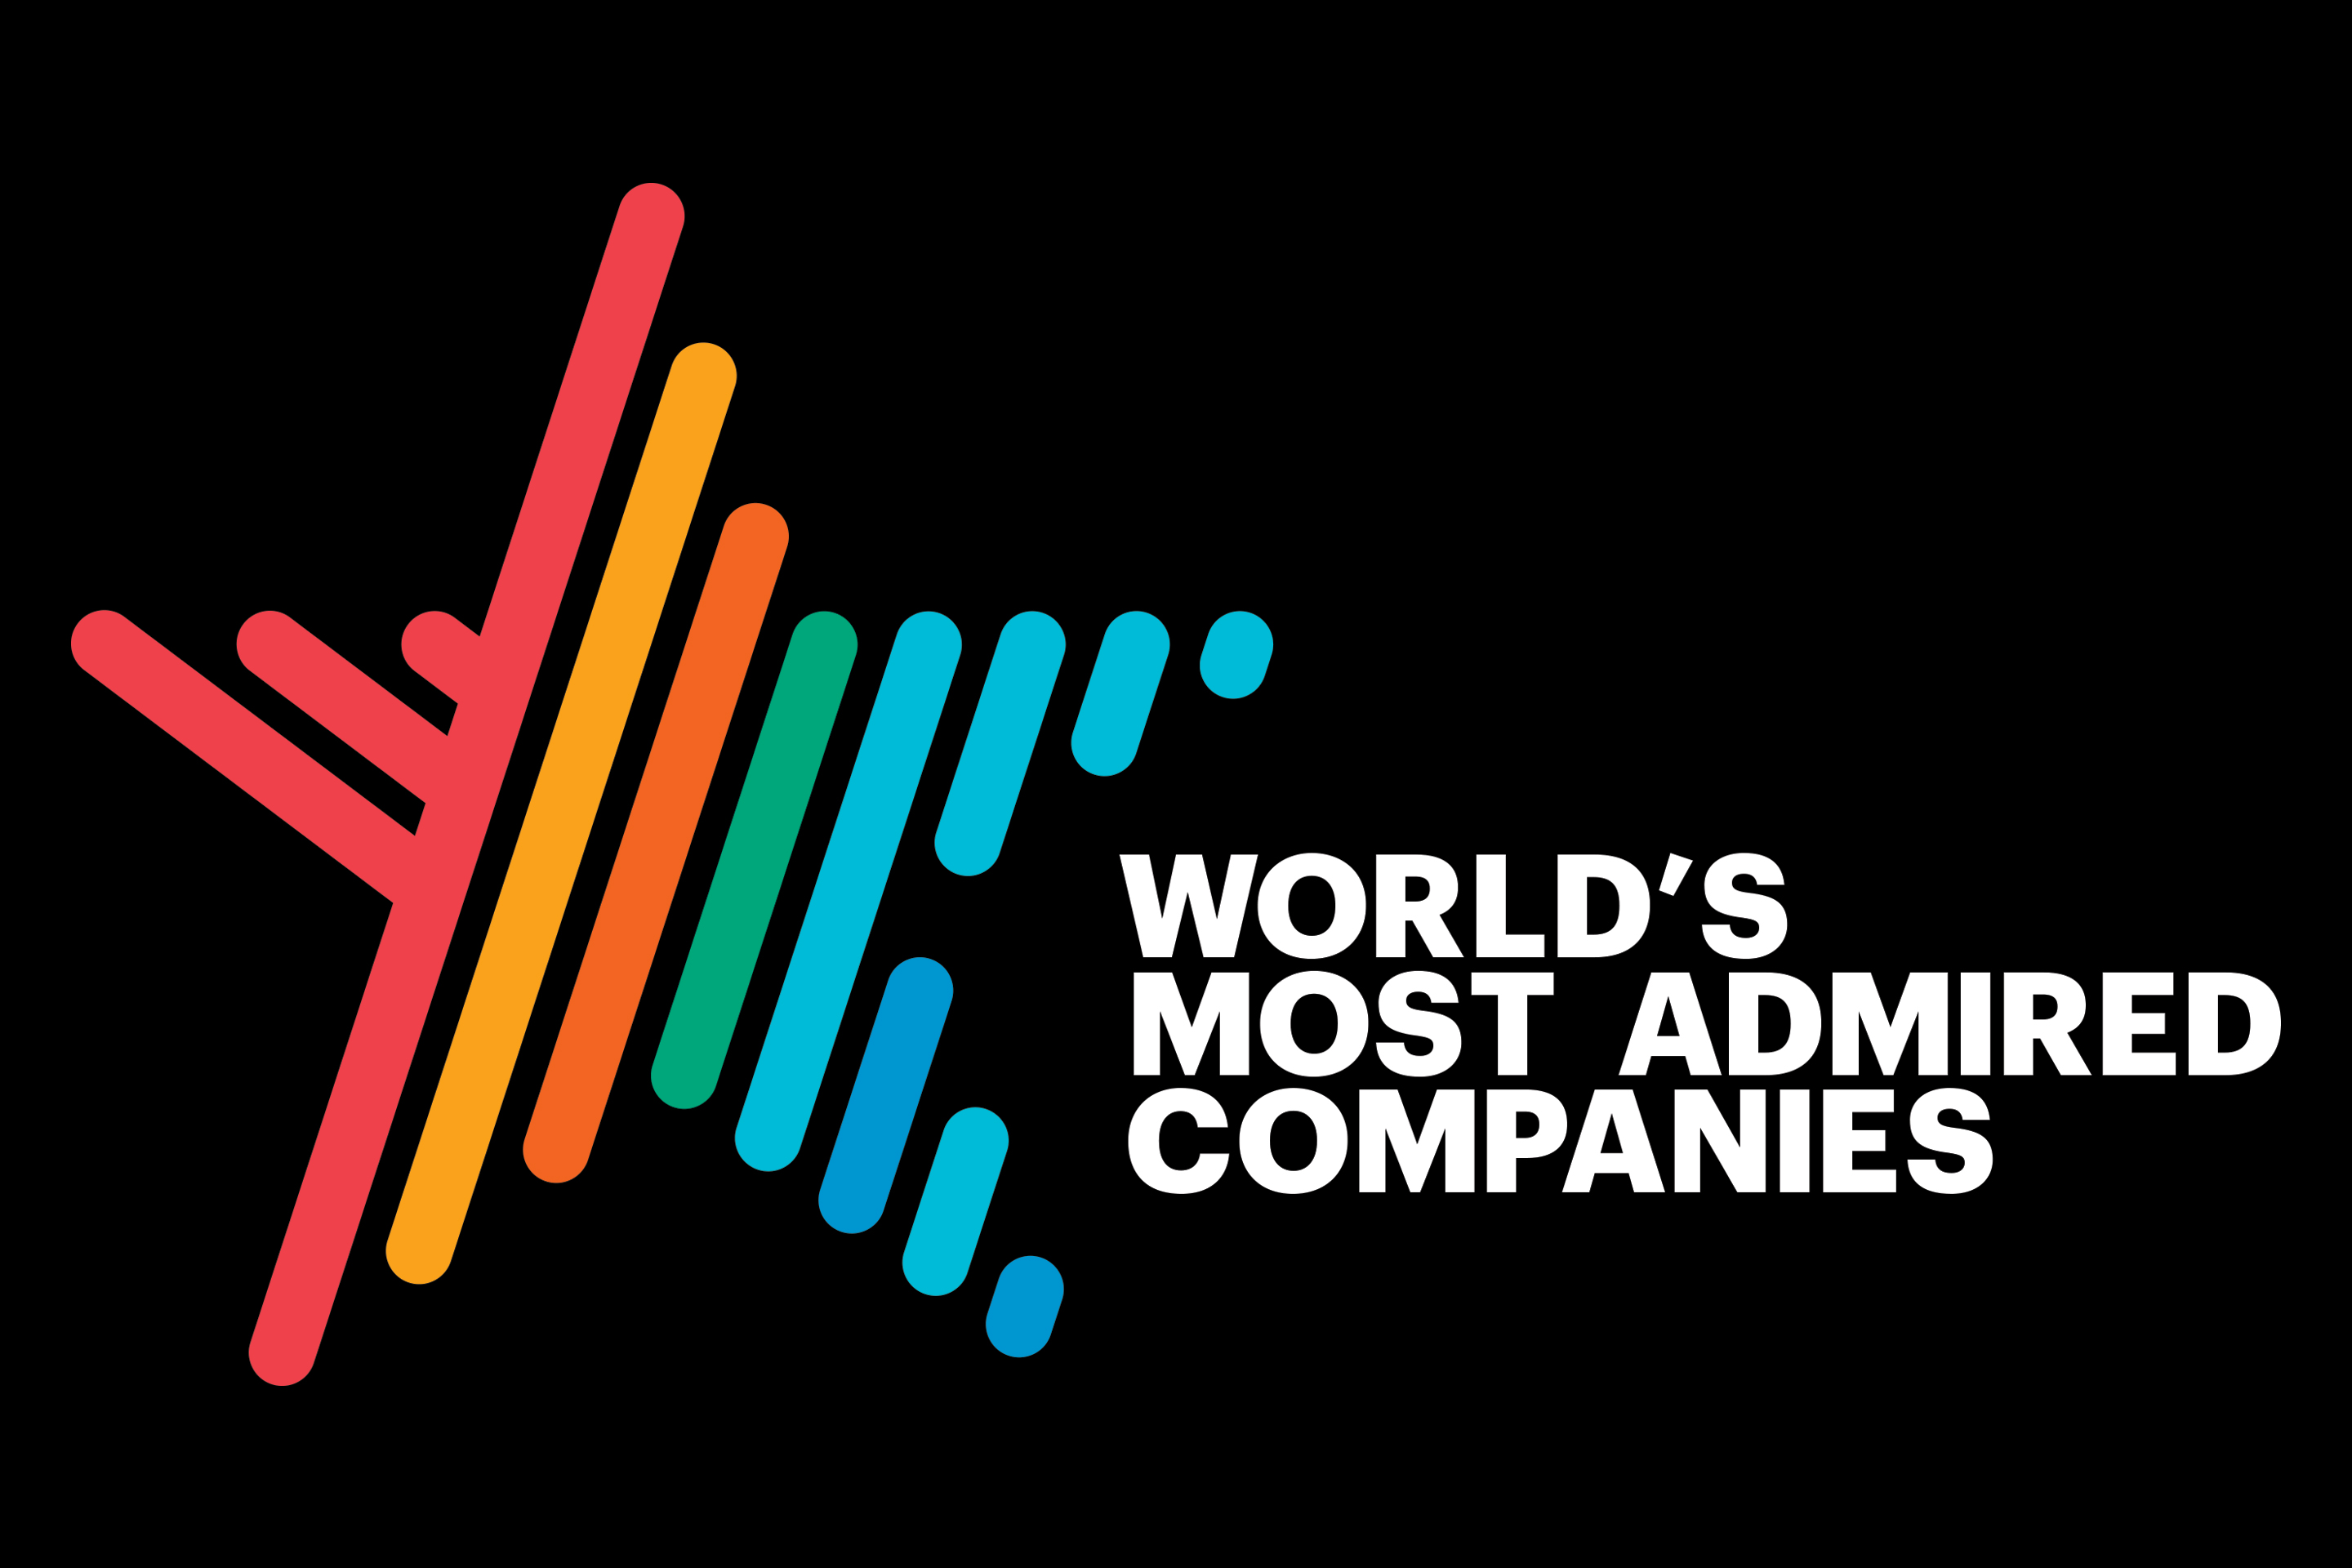 """i2B included in """"Top 10 Admired Companies in 2021"""" by DigiTech Insight"""